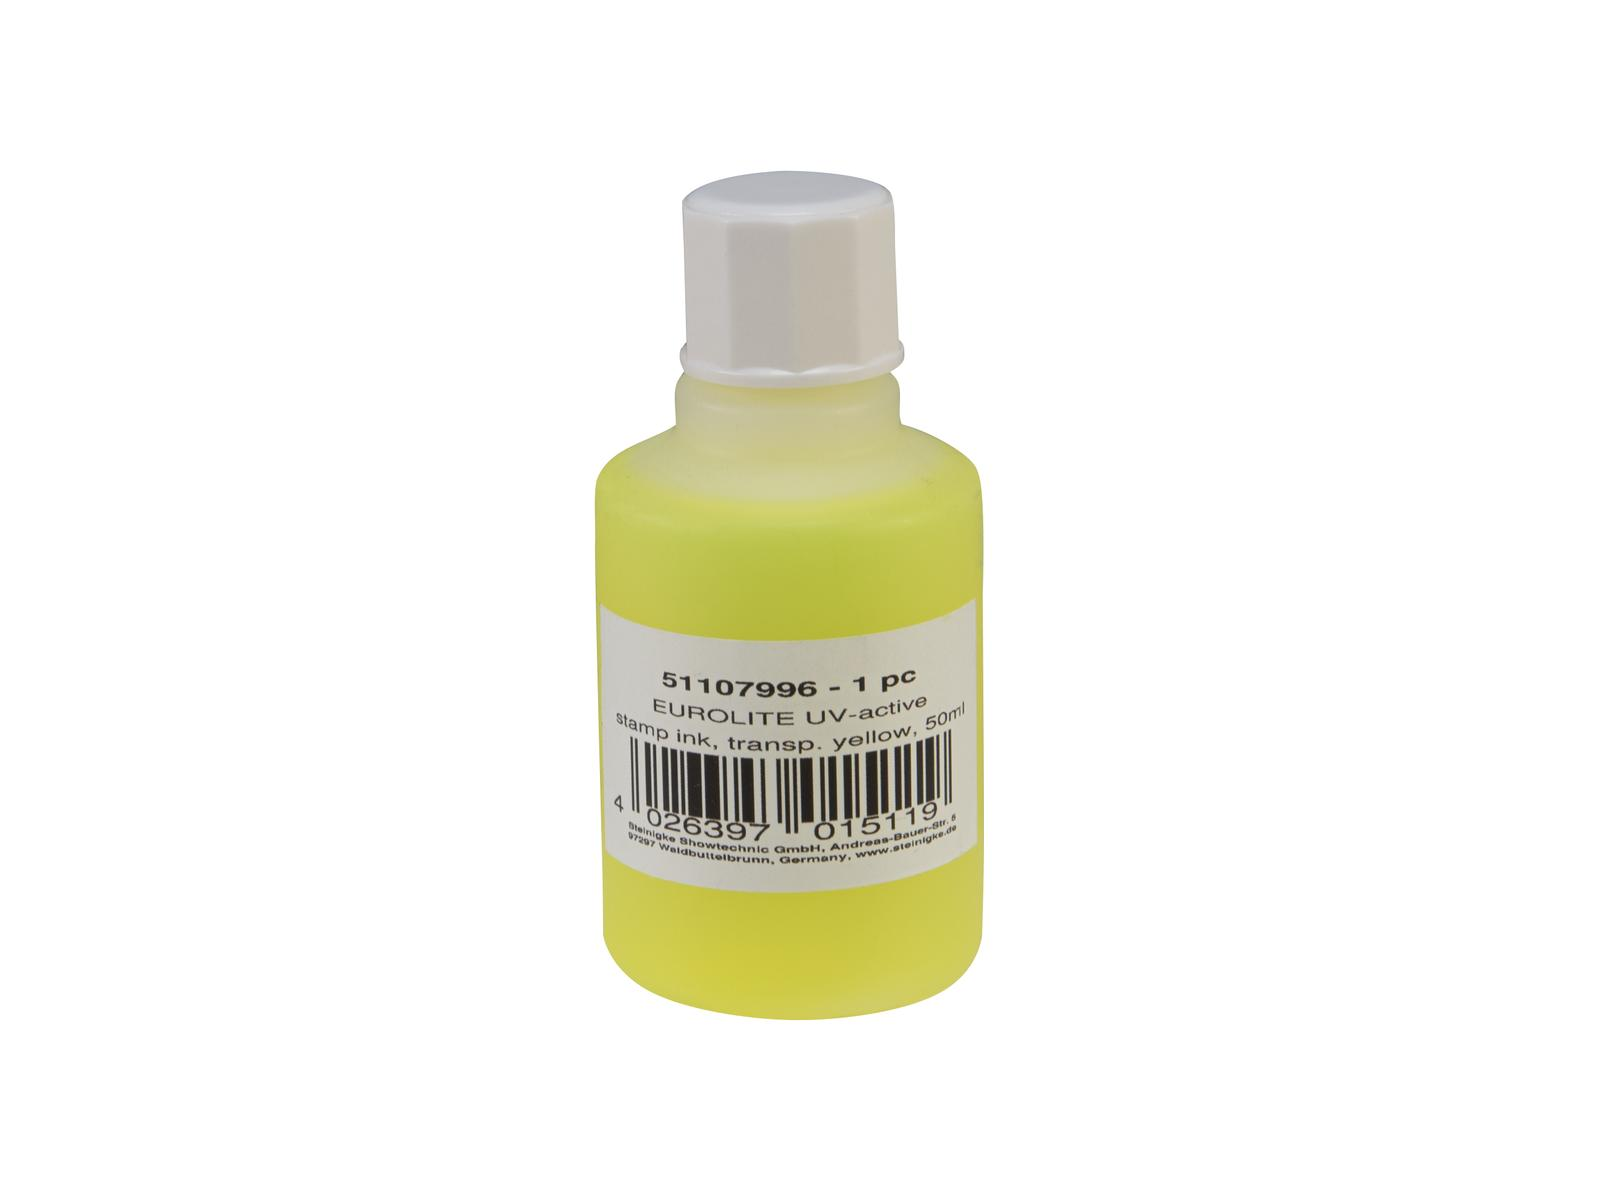 EUROLITE UV-aktive Stempelfarbe, transparent gelb, 50ml